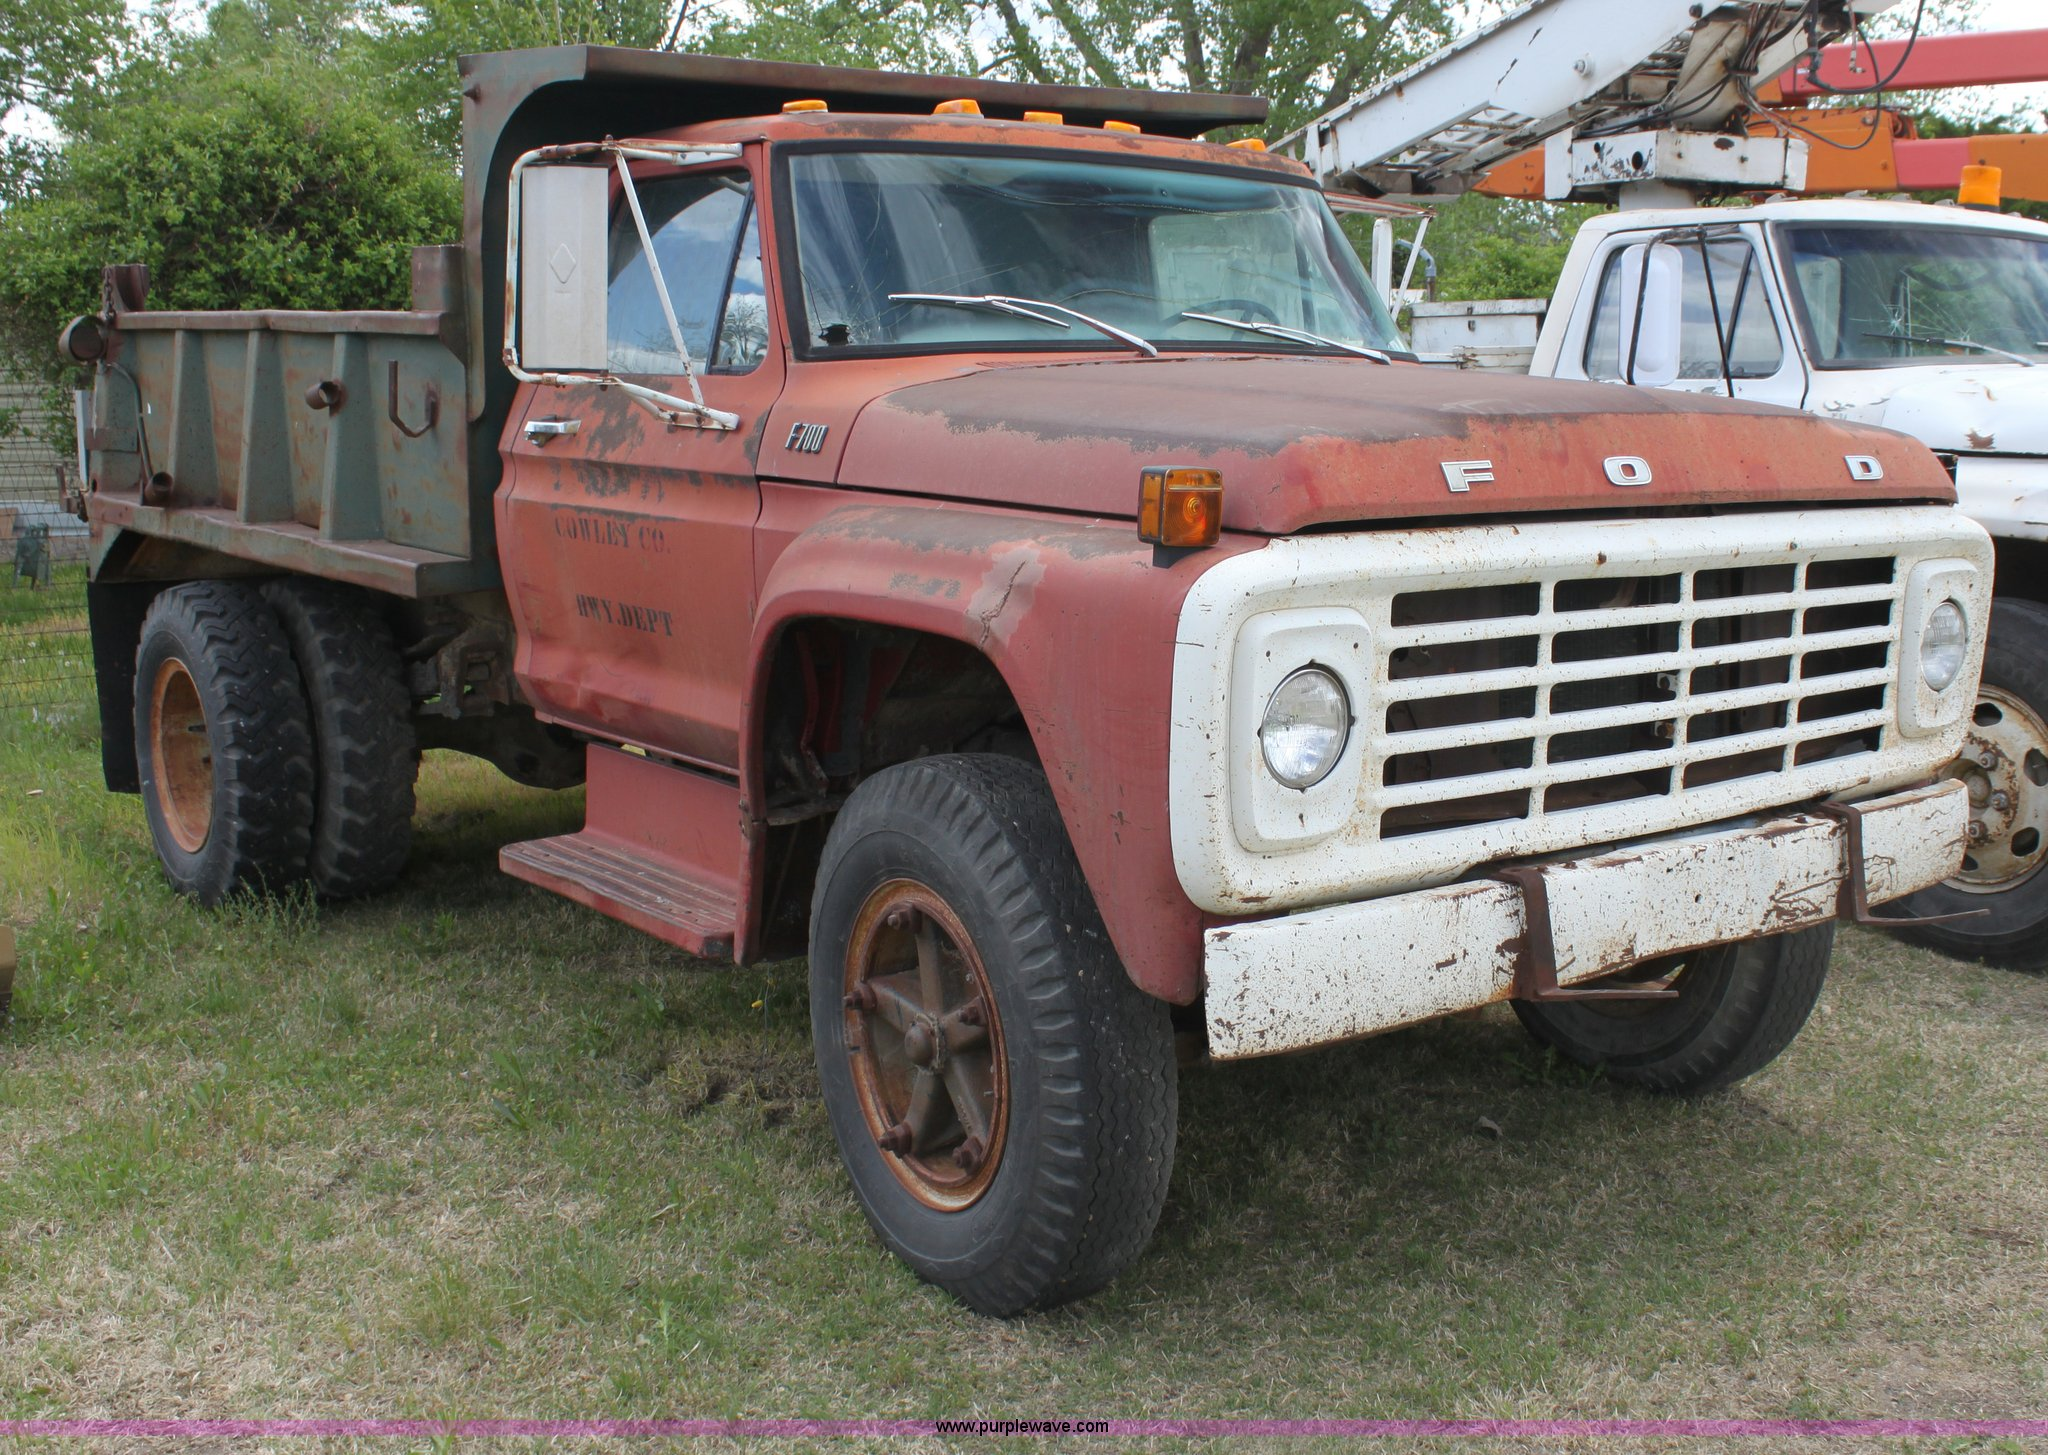 1968 Ford Dump Truck Wiring Diagrams 1954 F600 1977 F700 Item H2062 Sold June 26 Const Rh Purplewave Com For Sale F500